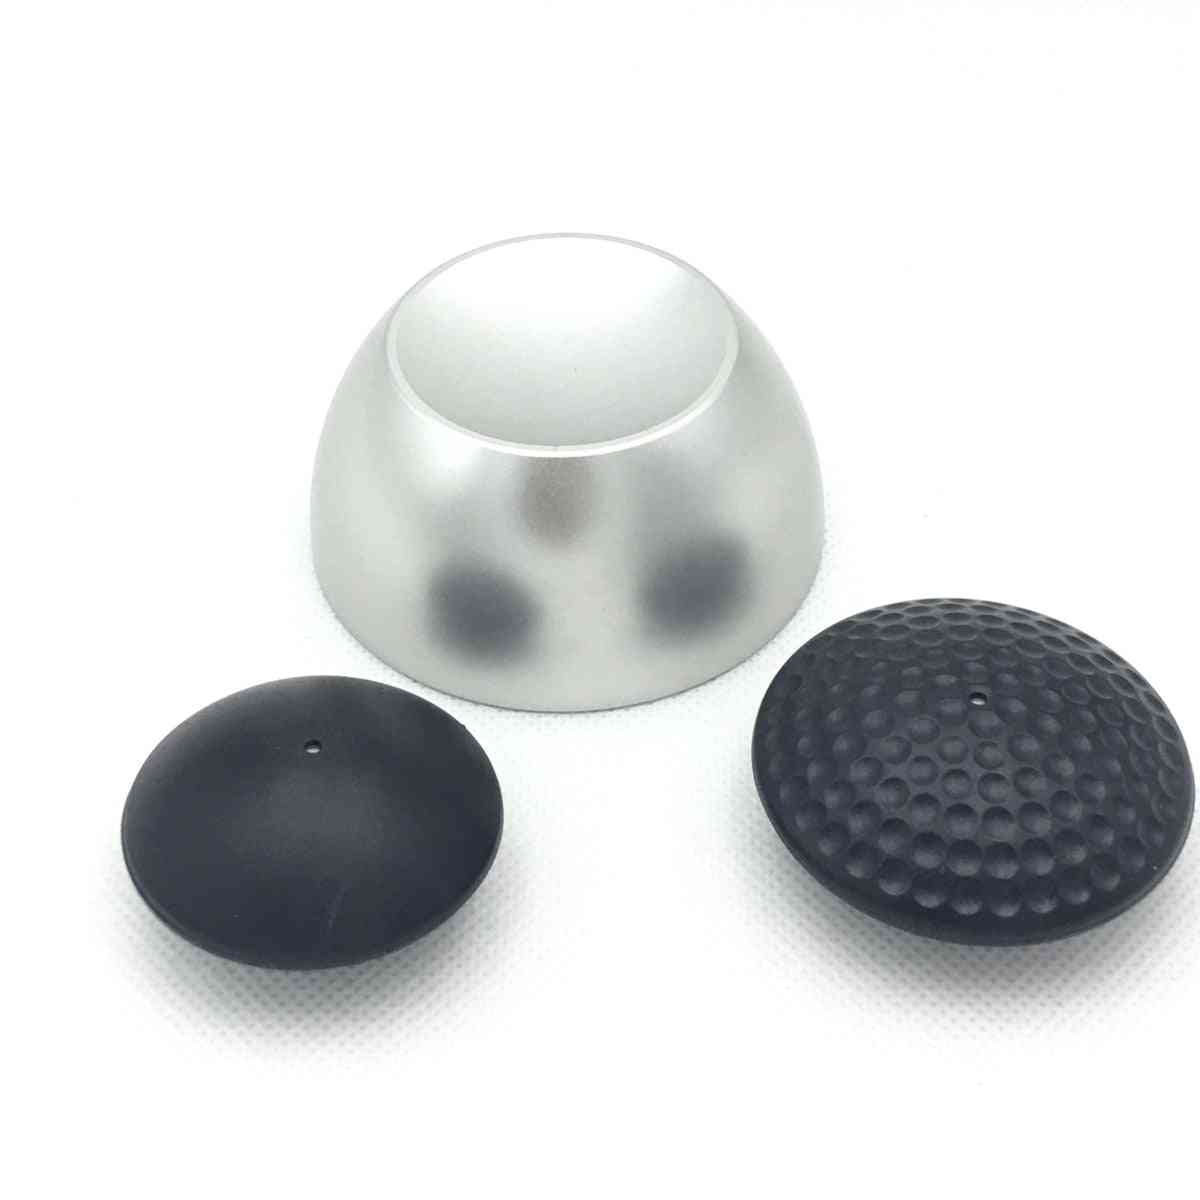 Magnetic Security Tag Detacher Anti Shoplifting Device